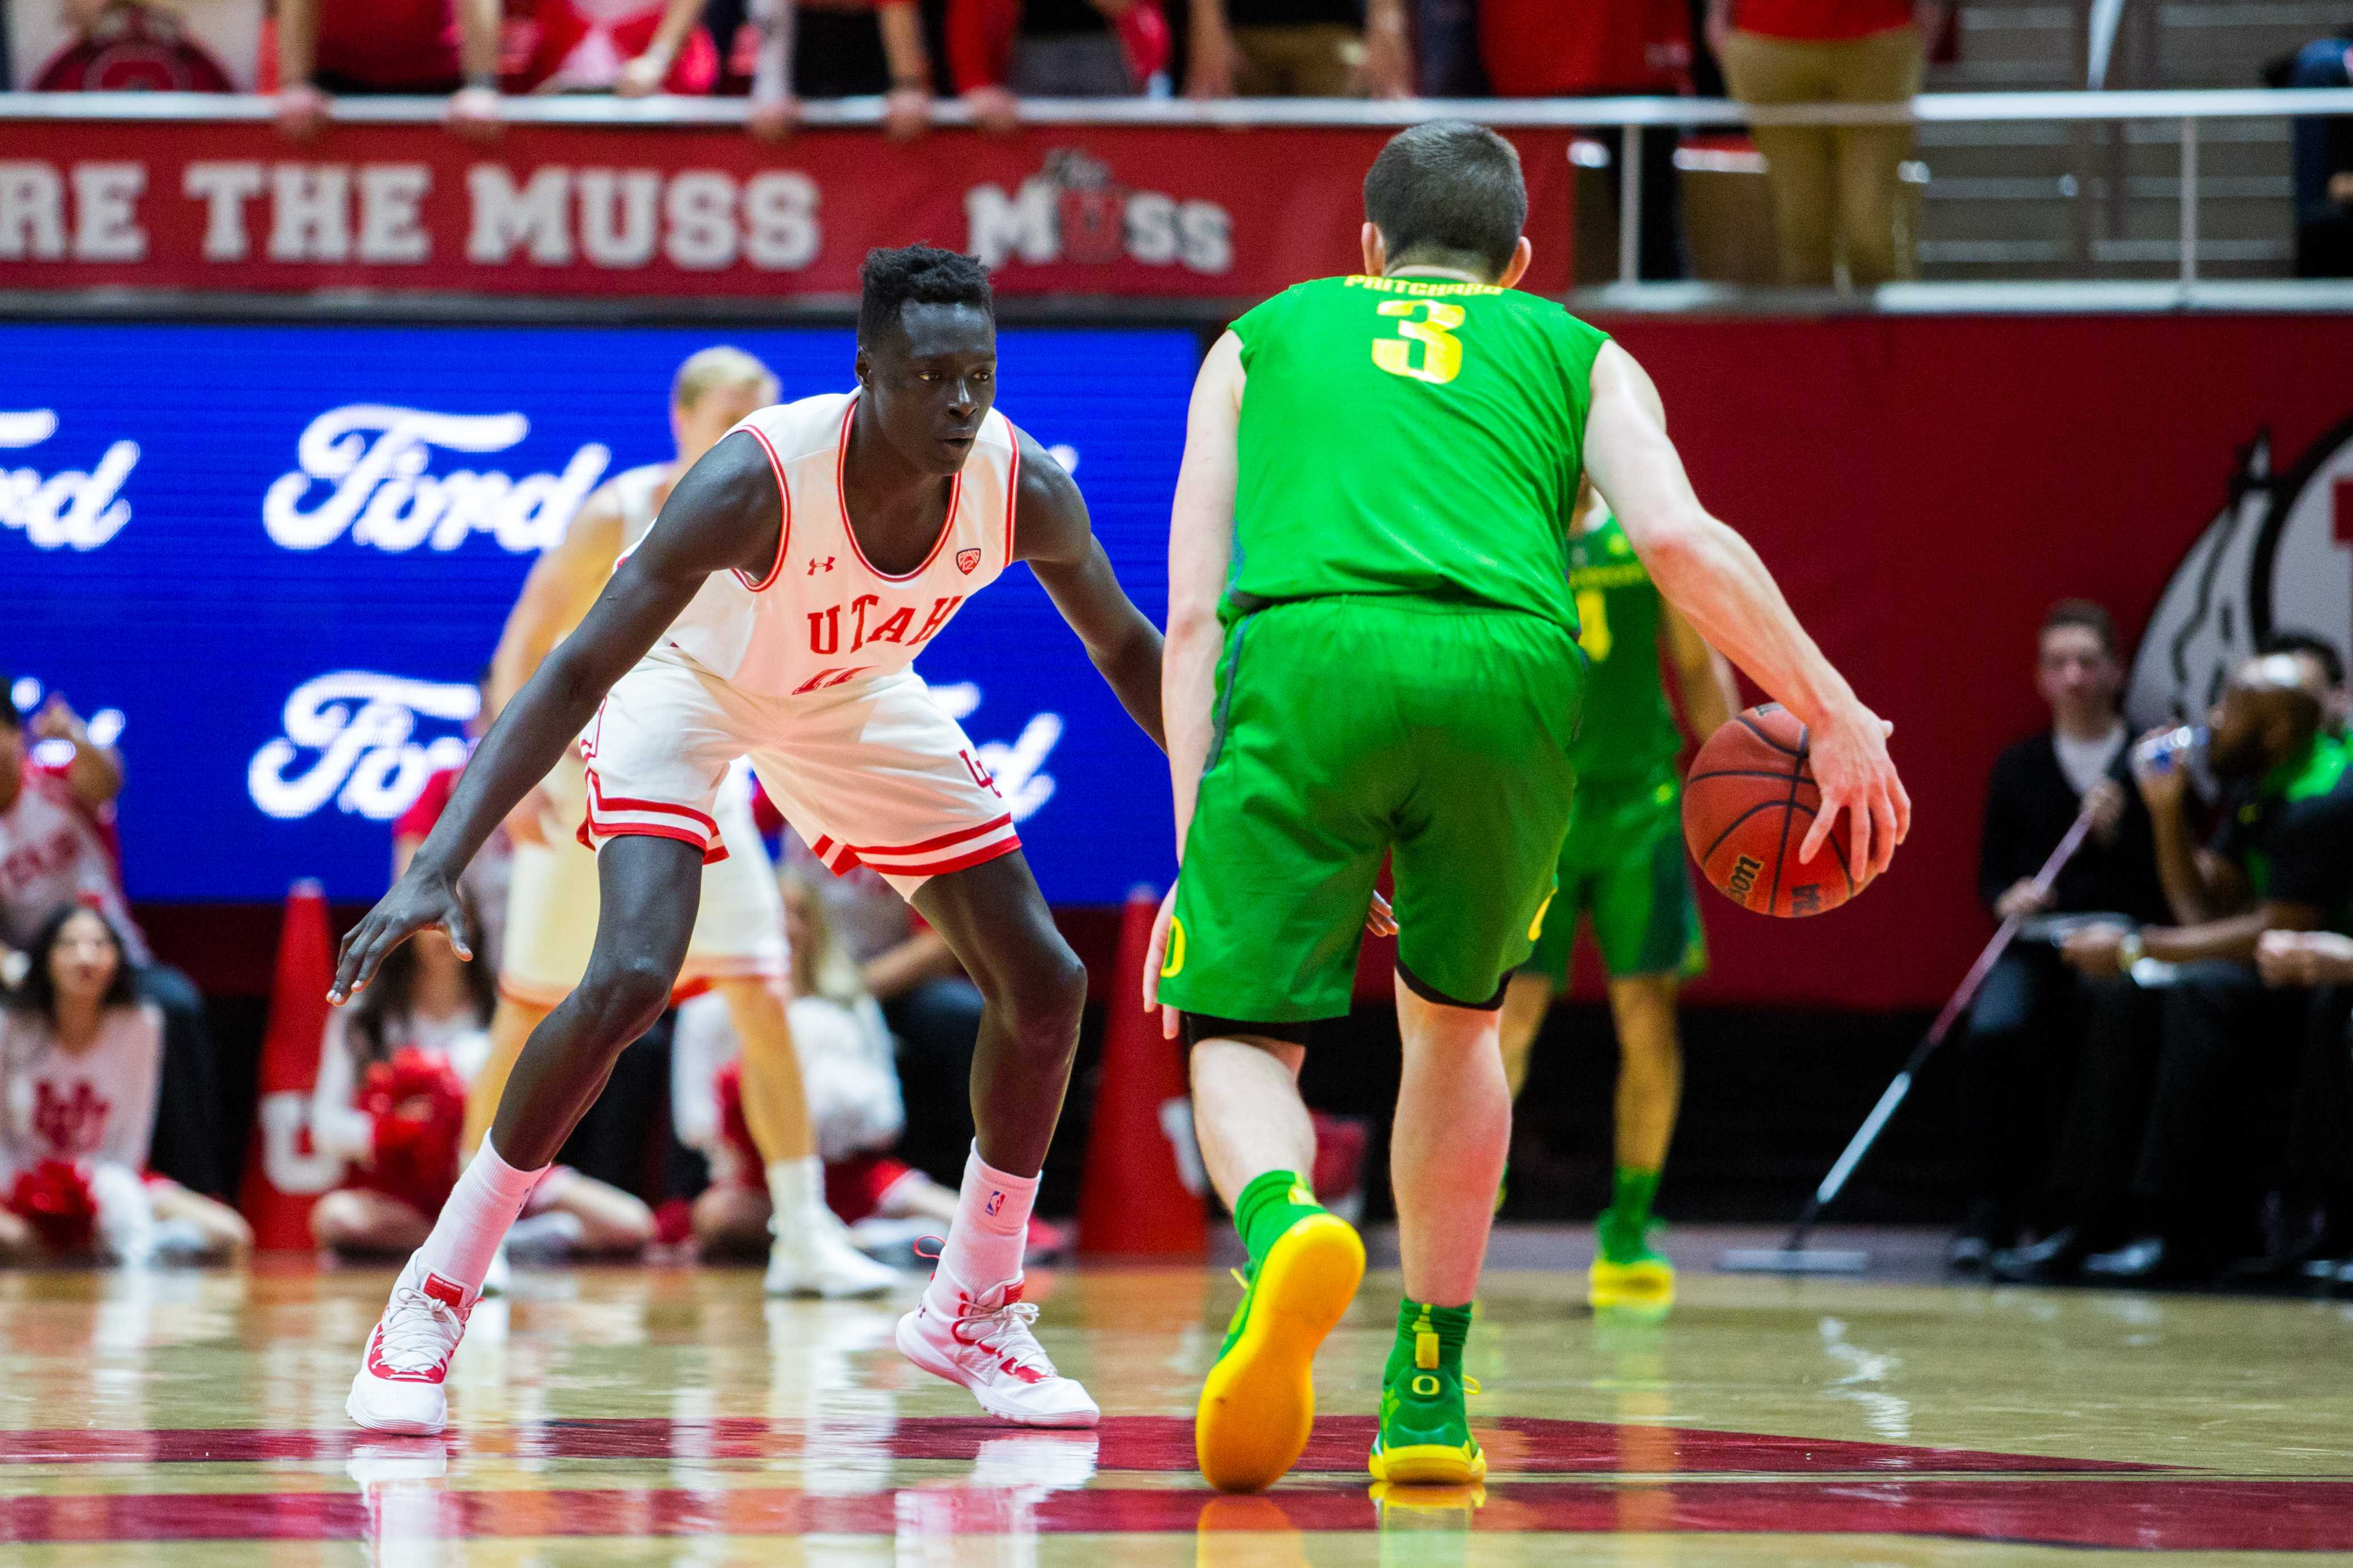 University of Utah freshman forward Both Gach (11) spread his arms to defend against the Oregon Ducks in an NCAA Men's Basketball game vs. the University of Oregon at Jon M. Huntsman Center in Salt Lake City, UT on Thursday January 31, 2019.  (Photo by Curtis Lin | Daily Utah Chronicle)